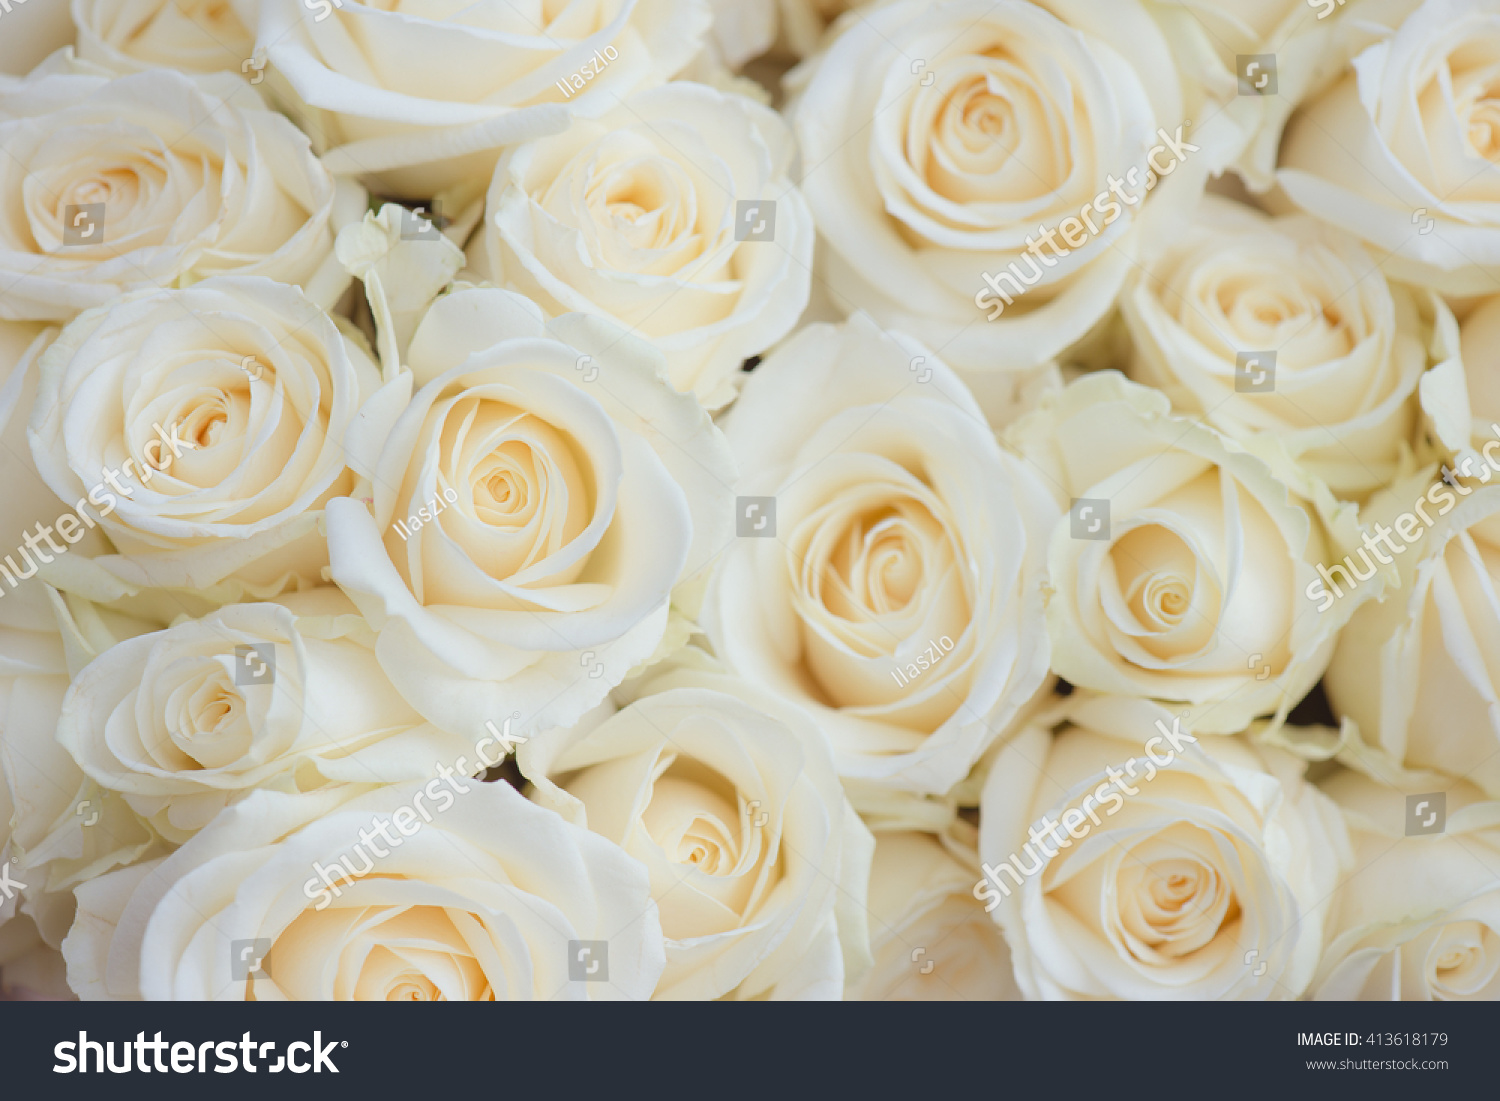 Royalty Free Wedding Bouquet Of White Flowers White 413618179